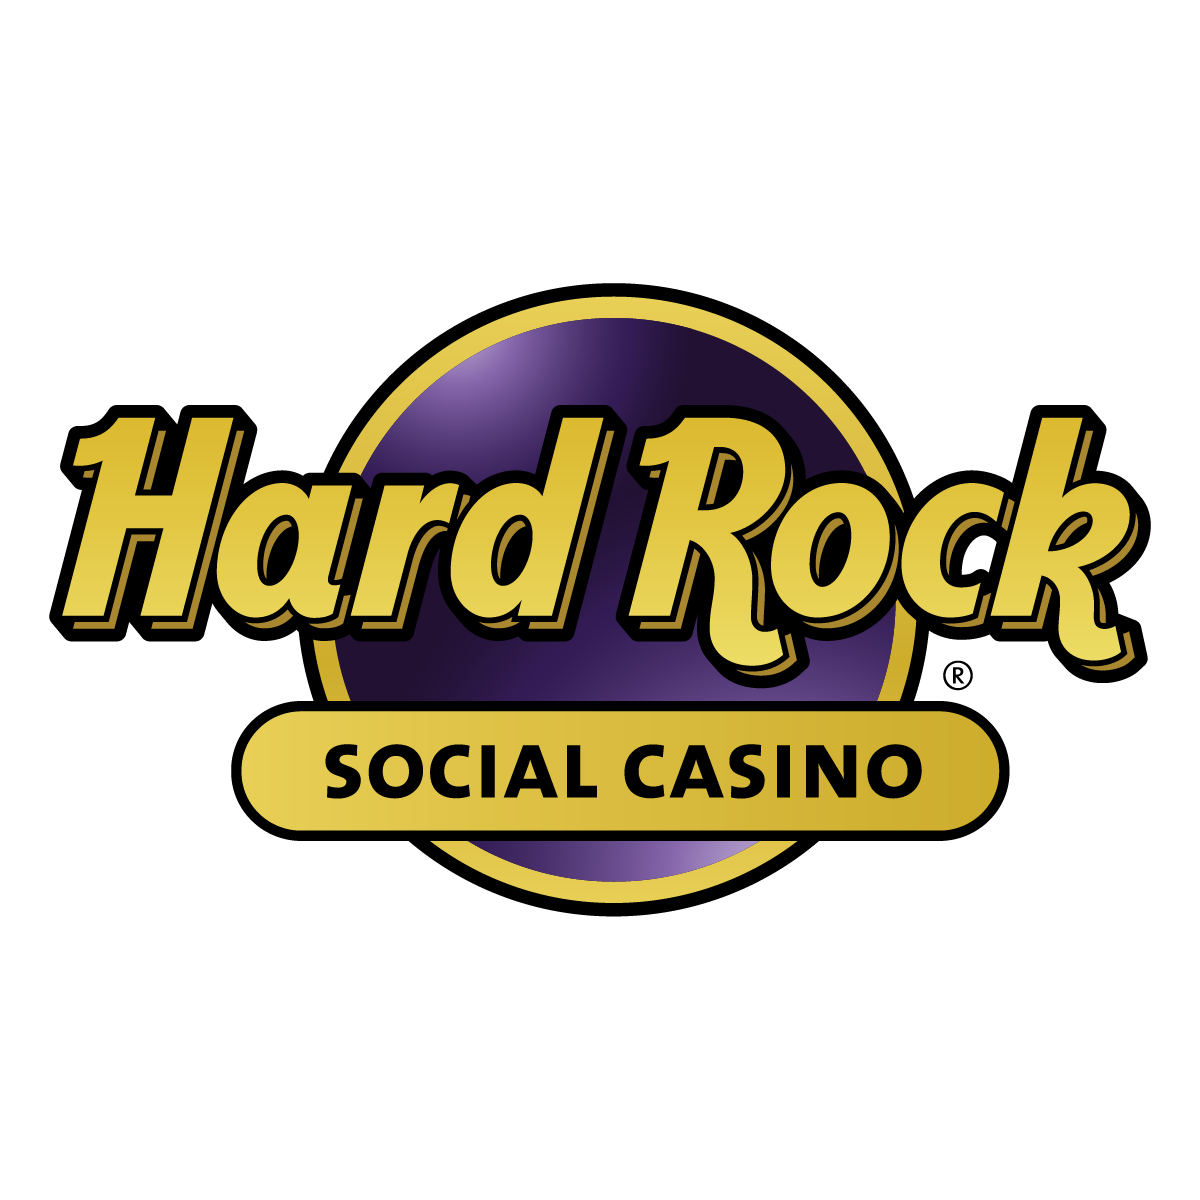 Hard rock casino download horseshoe casino council bluffs ia